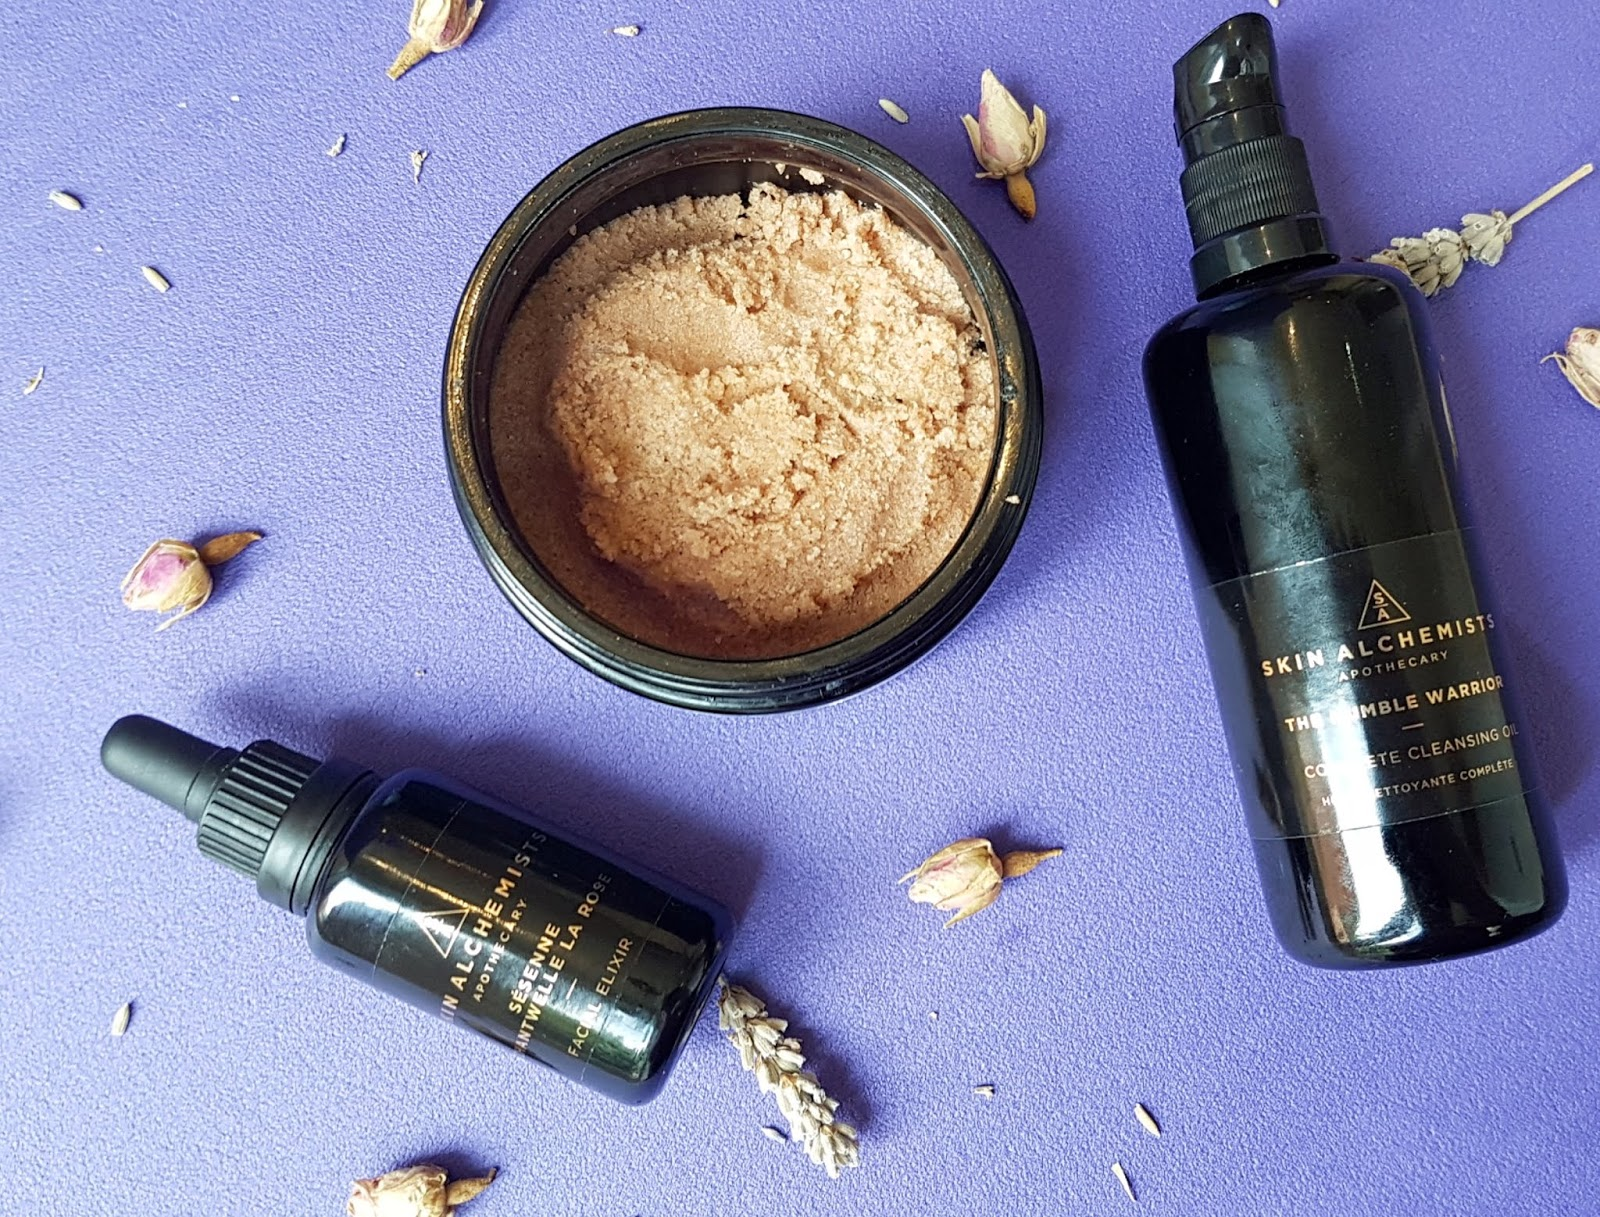 Skin Alchemists Apothecary skincare Review